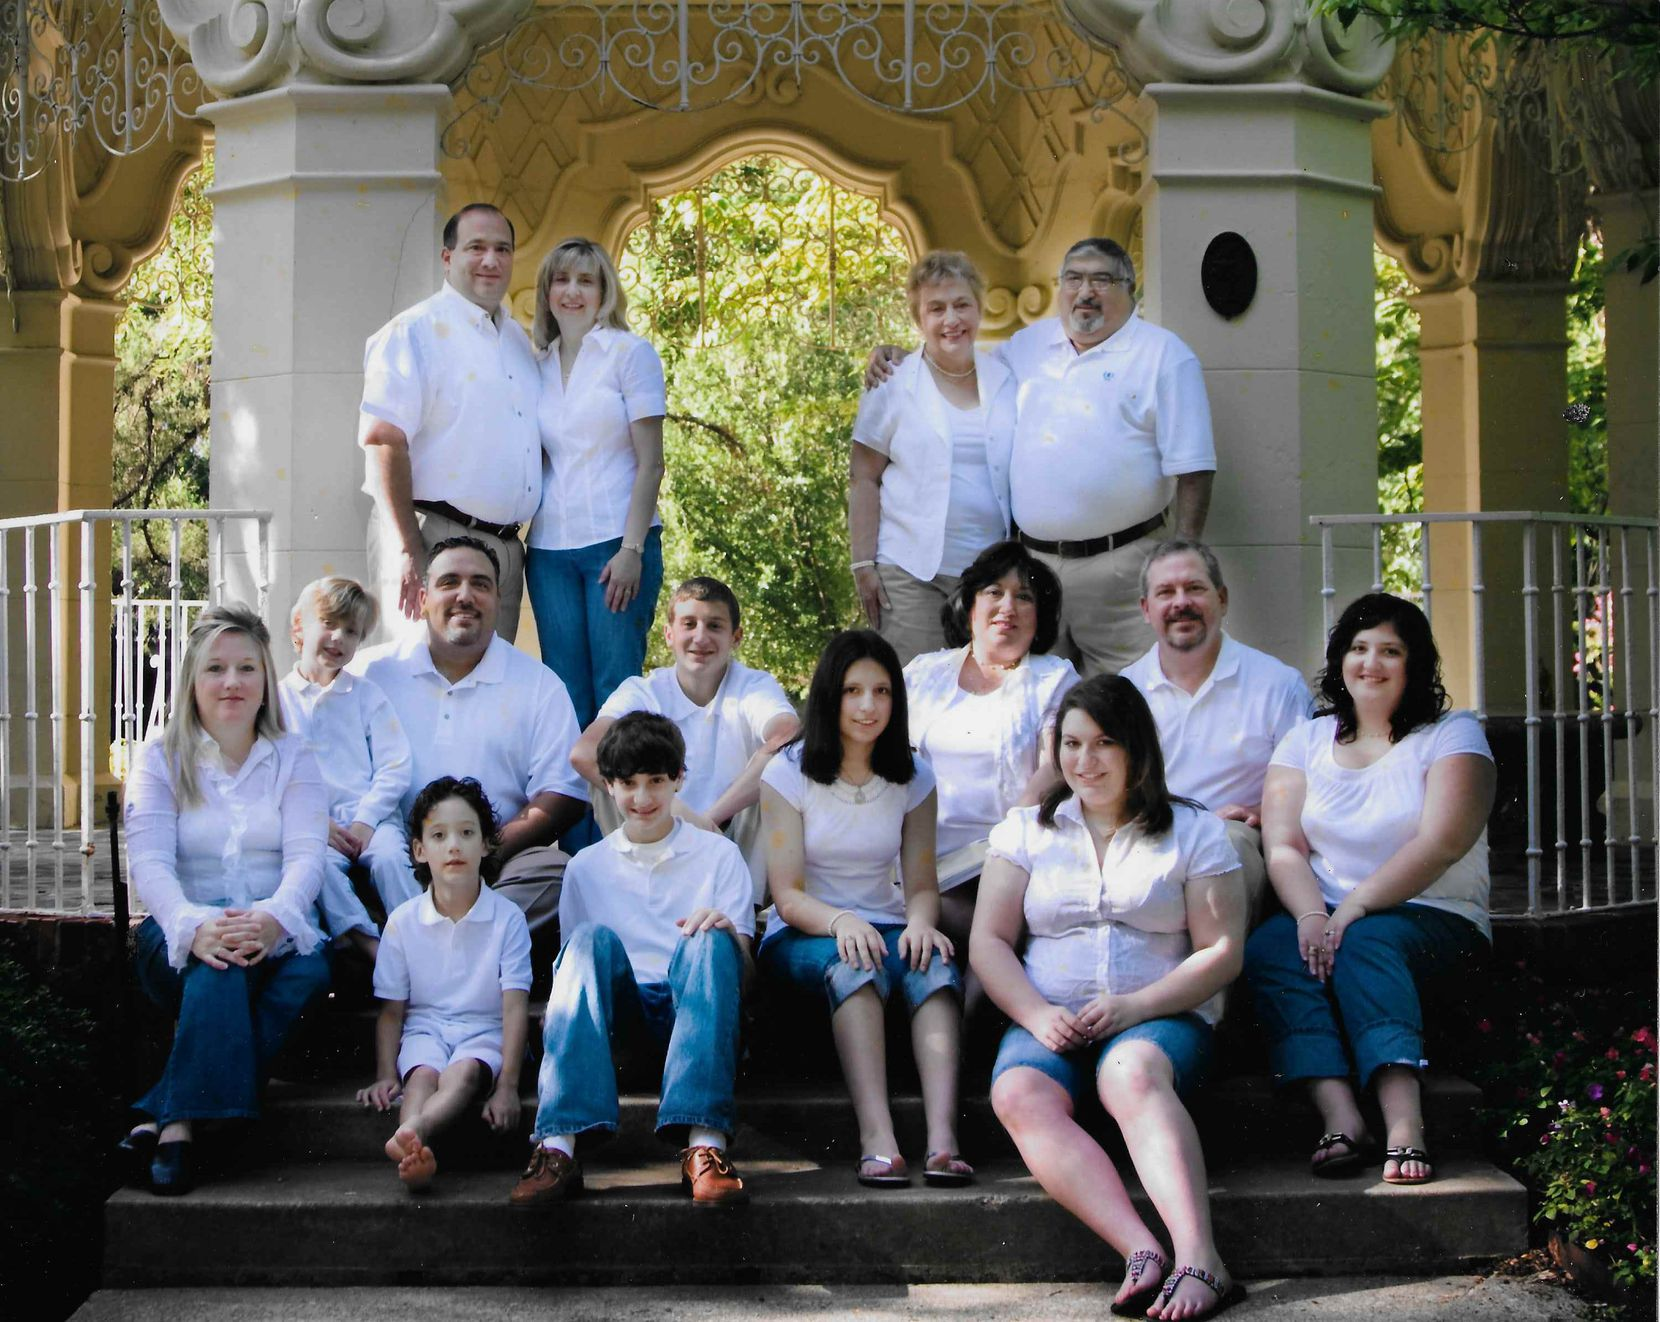 Frank and Lucy Campise (top right) joined their three children's families for a photo showing three generations in July 2008.